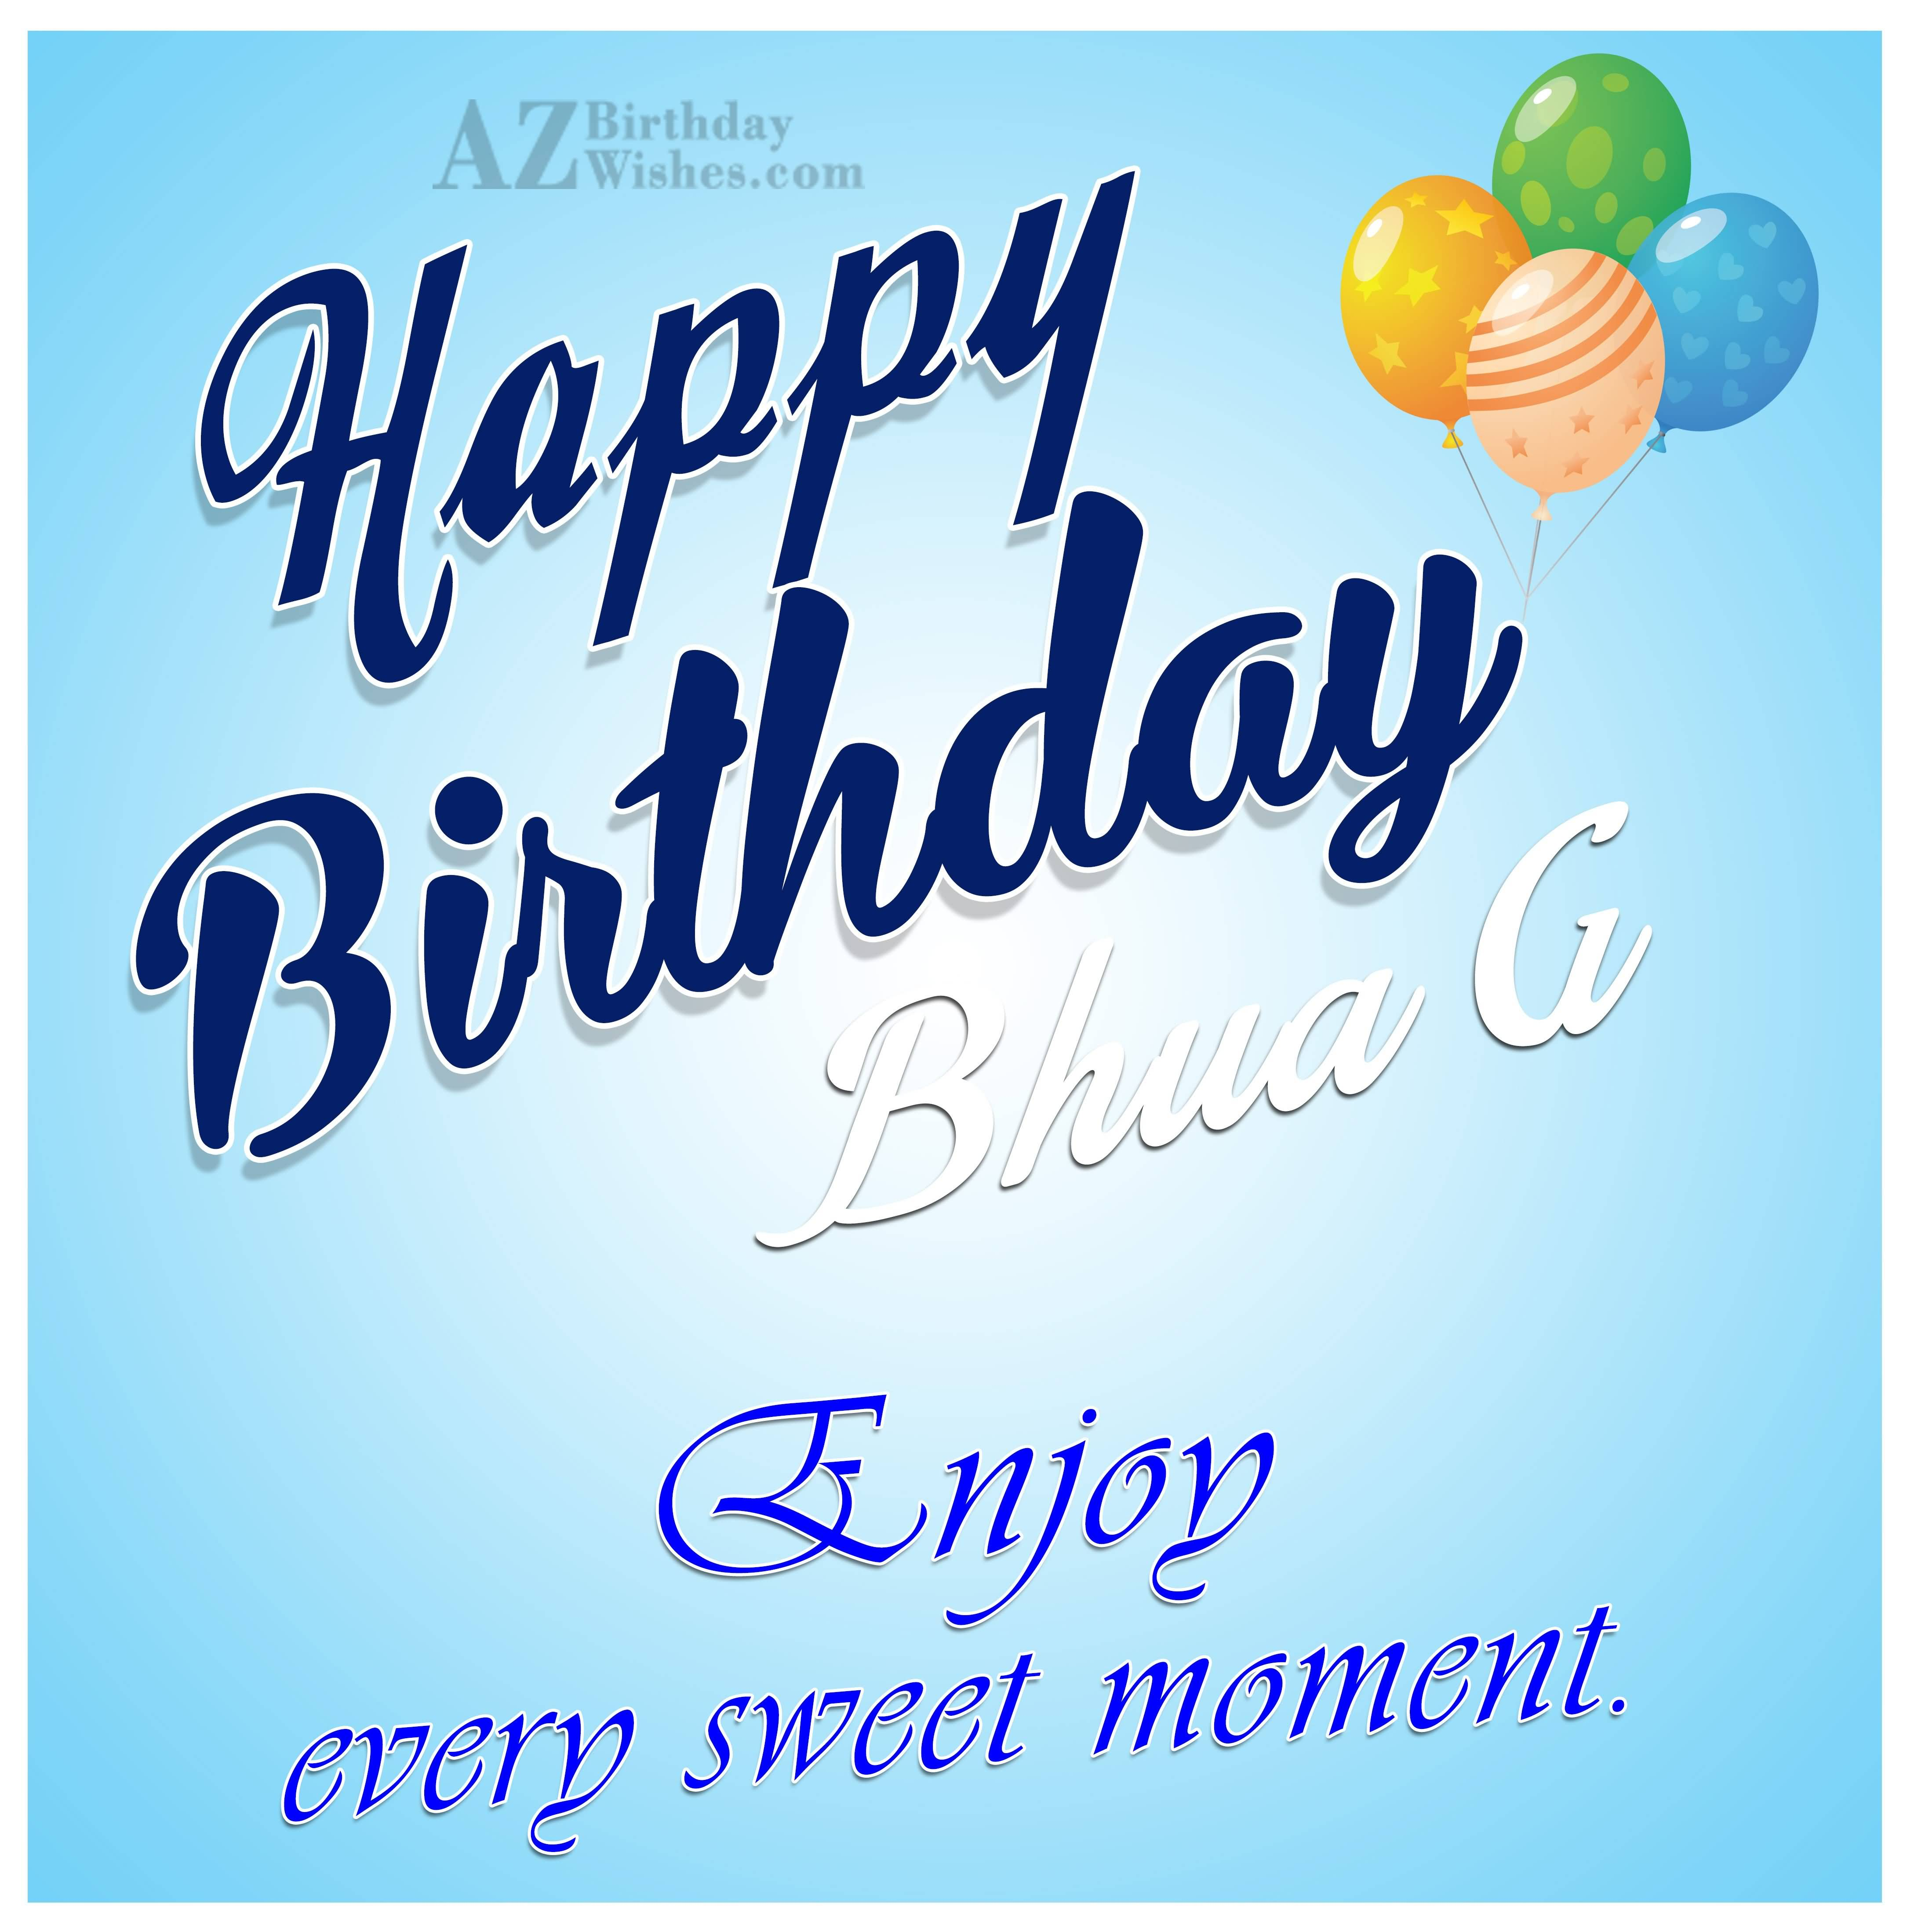 Cute Happy Birthday Wishes To Bhua G Enjoy Every Sweet Moment